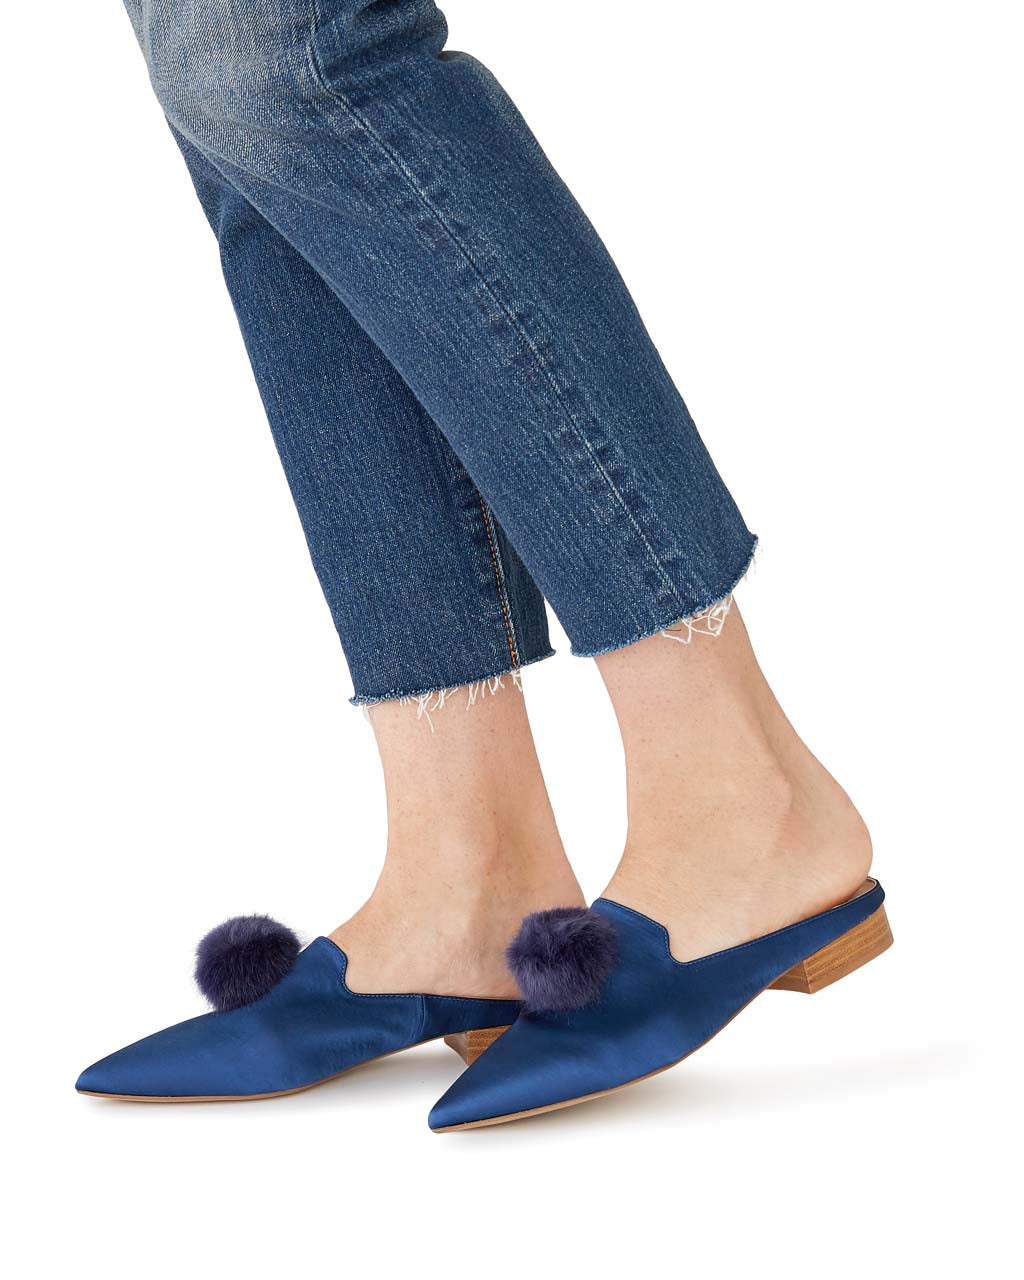 naja slide - navy satin